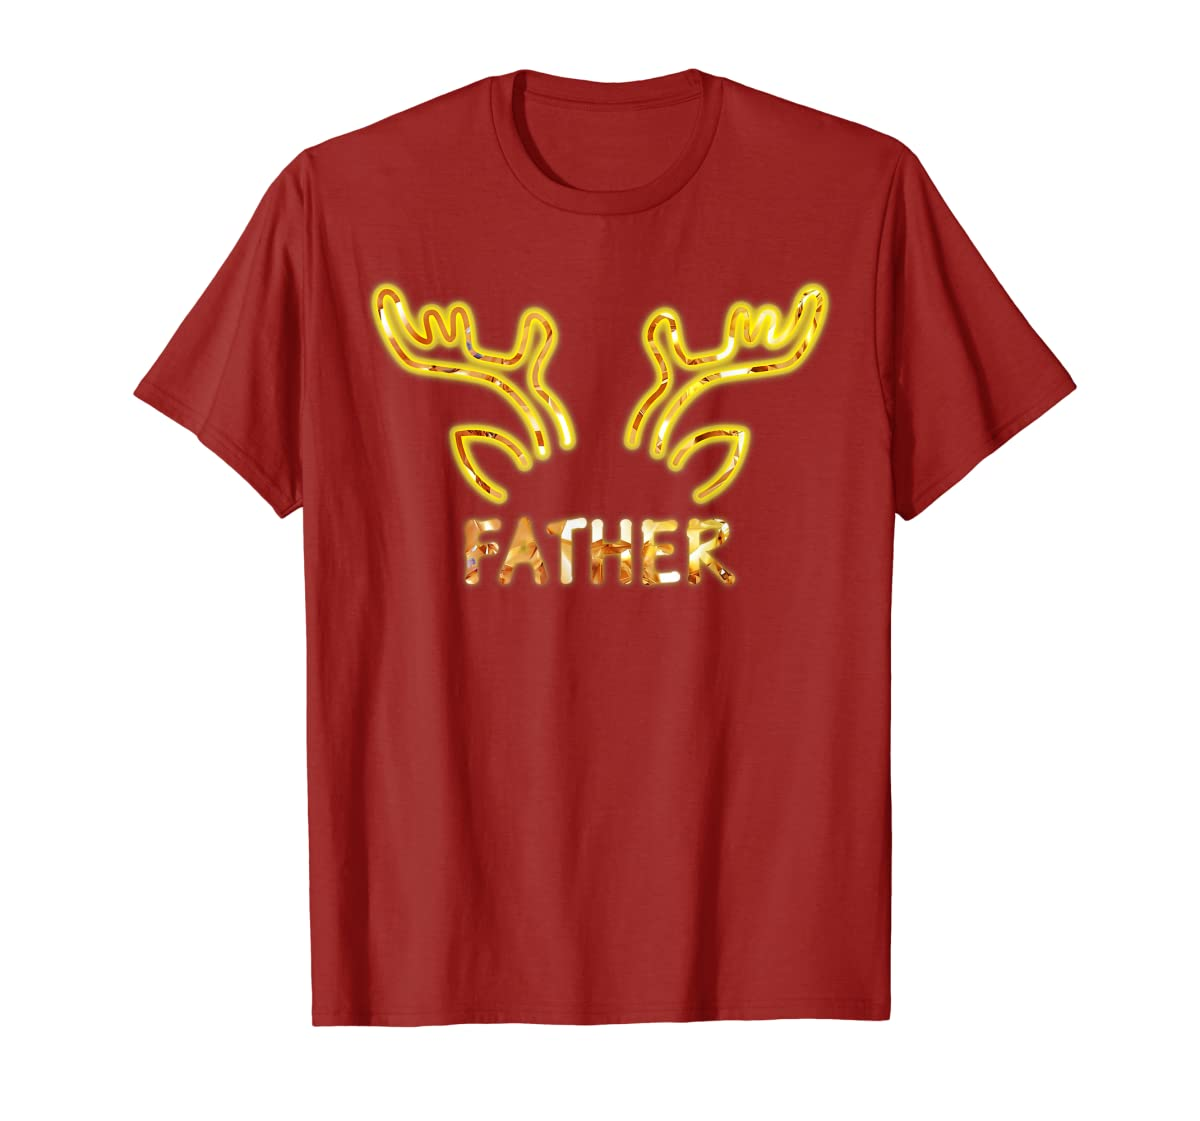 Father Reindeer Matching Family Christmas T-Shirt T-Shirt-Men's T-Shirt-Red